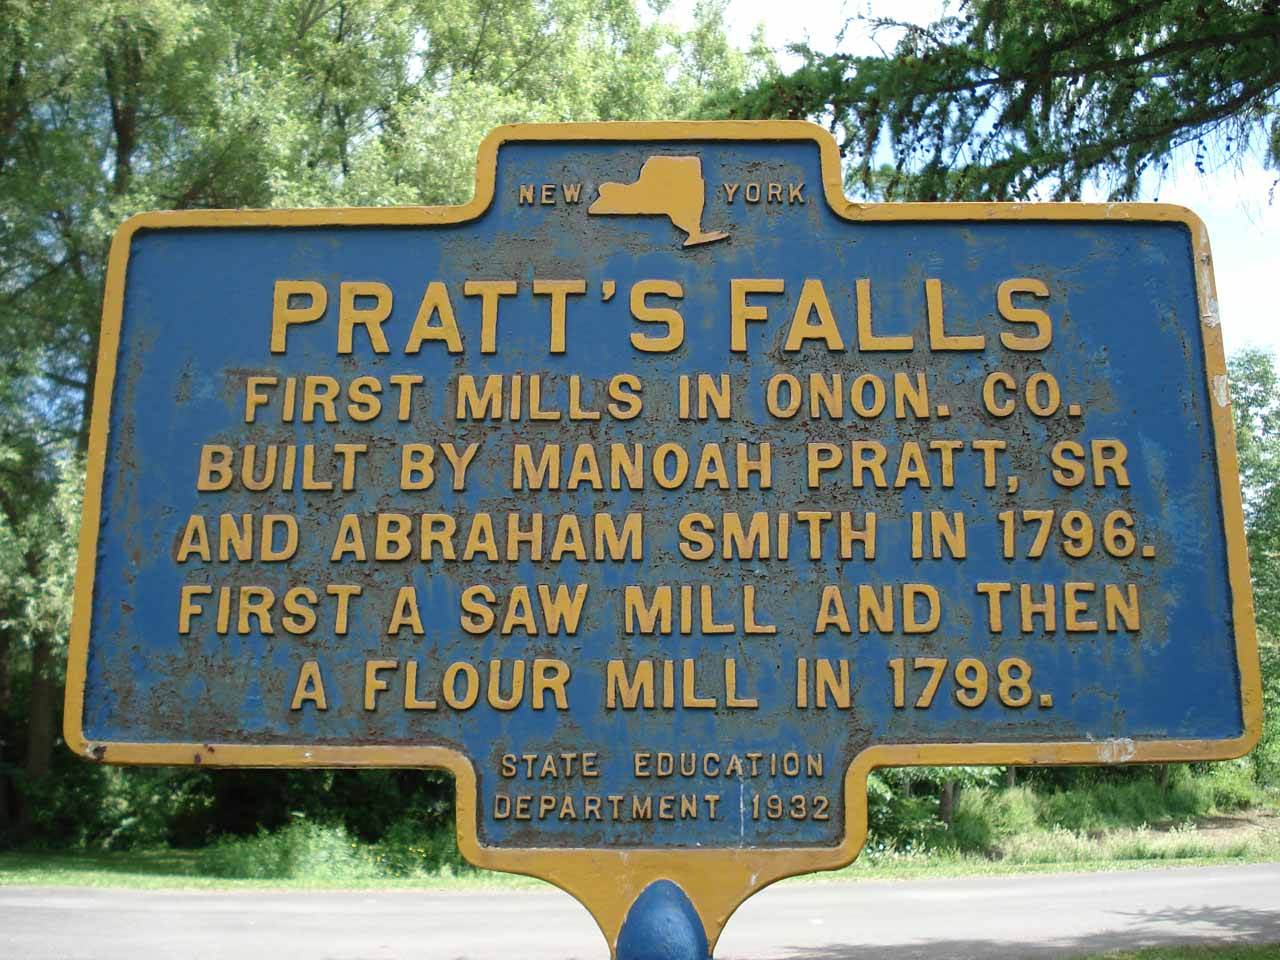 Info about the falls